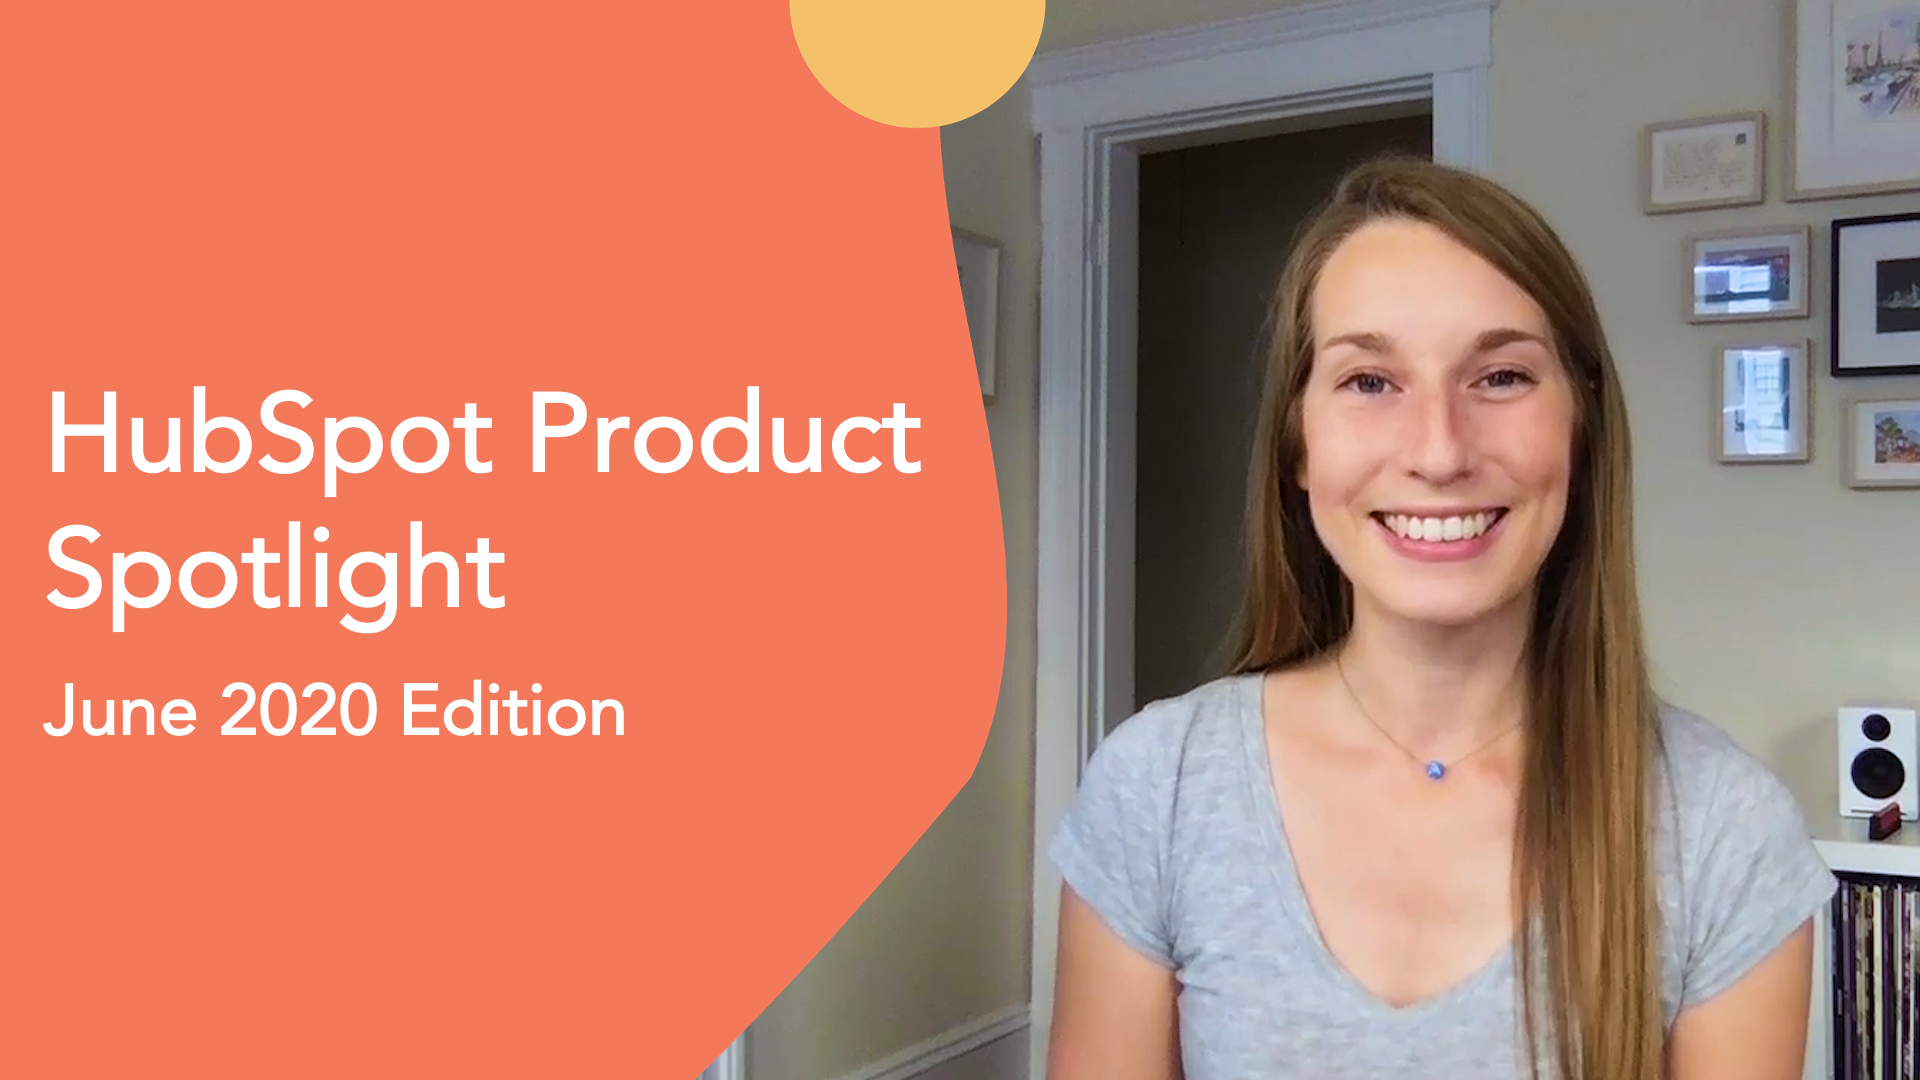 """Photo of a woman with a graphic that reads """"HubSpot Product Spotlight, June 2020 Edition"""""""